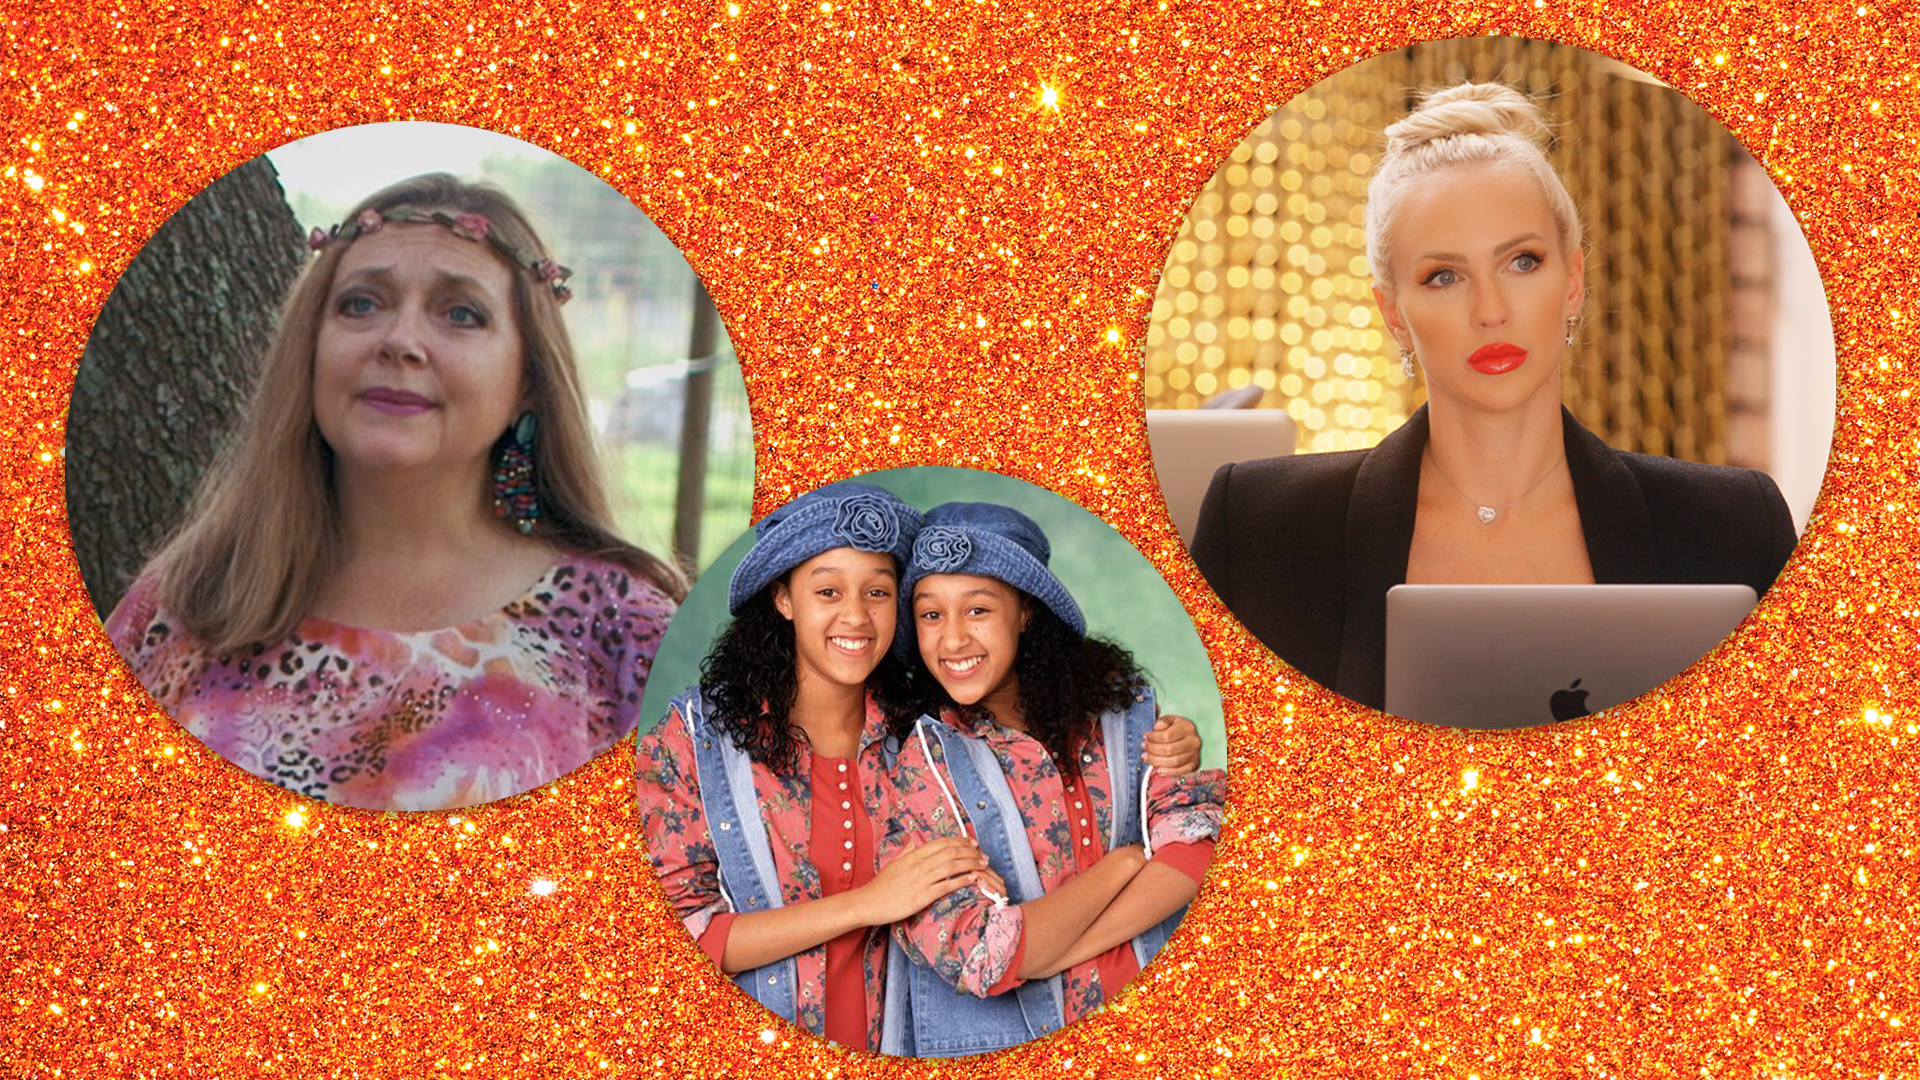 10 Easy Pop Culture Halloween Costumes You'll Actually Want To Wear